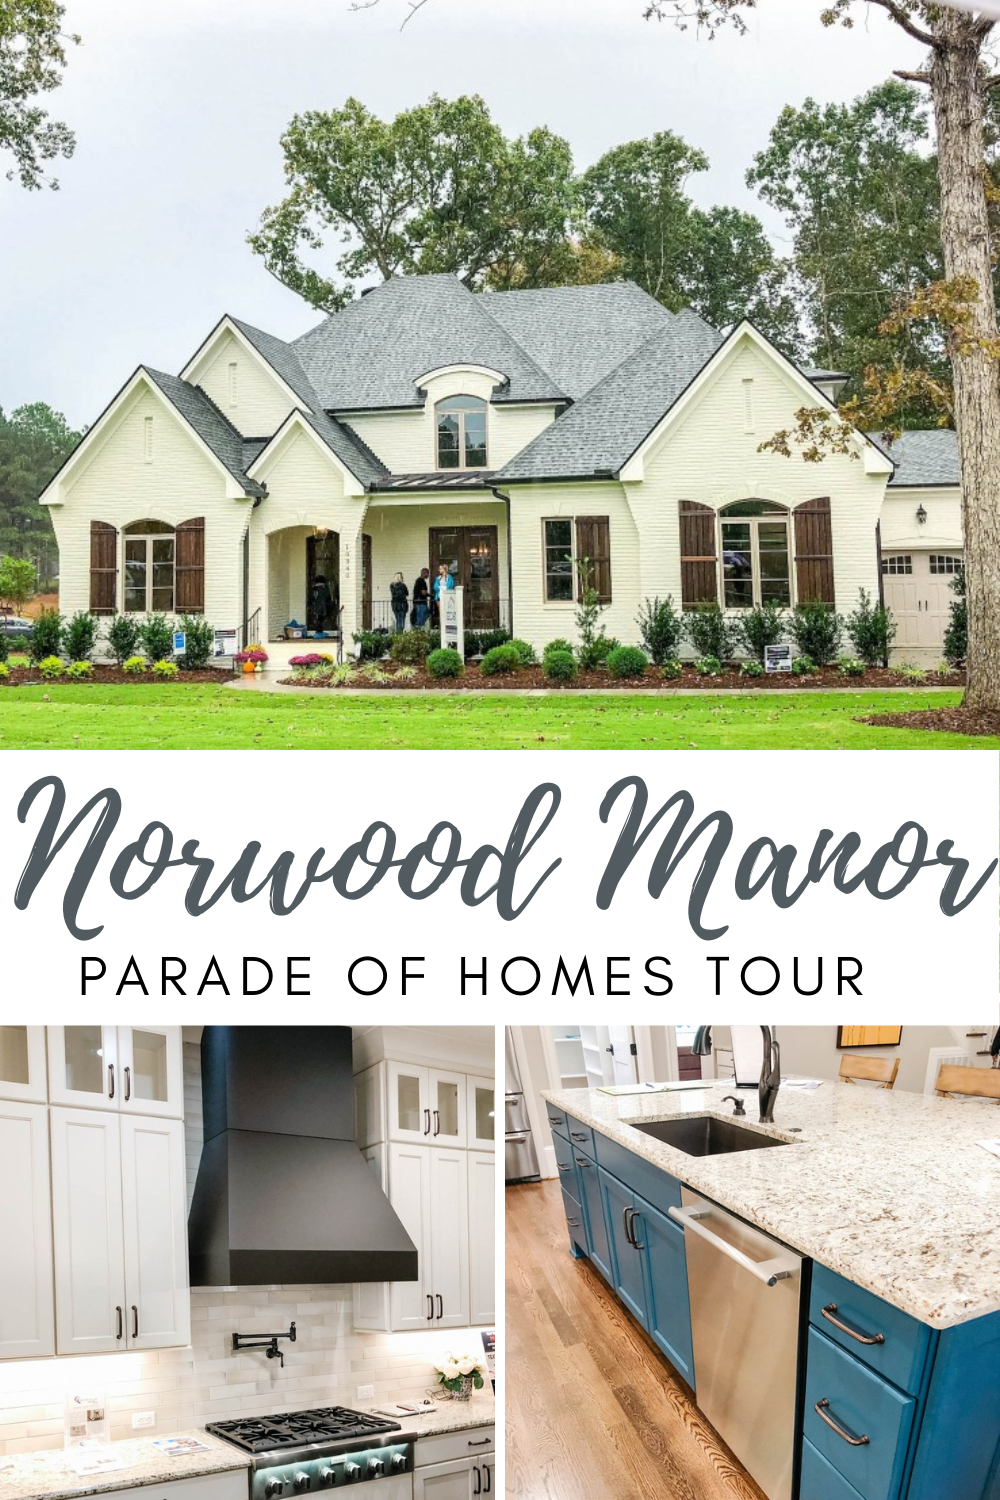 Norwood Manor Parade of Homes Tour